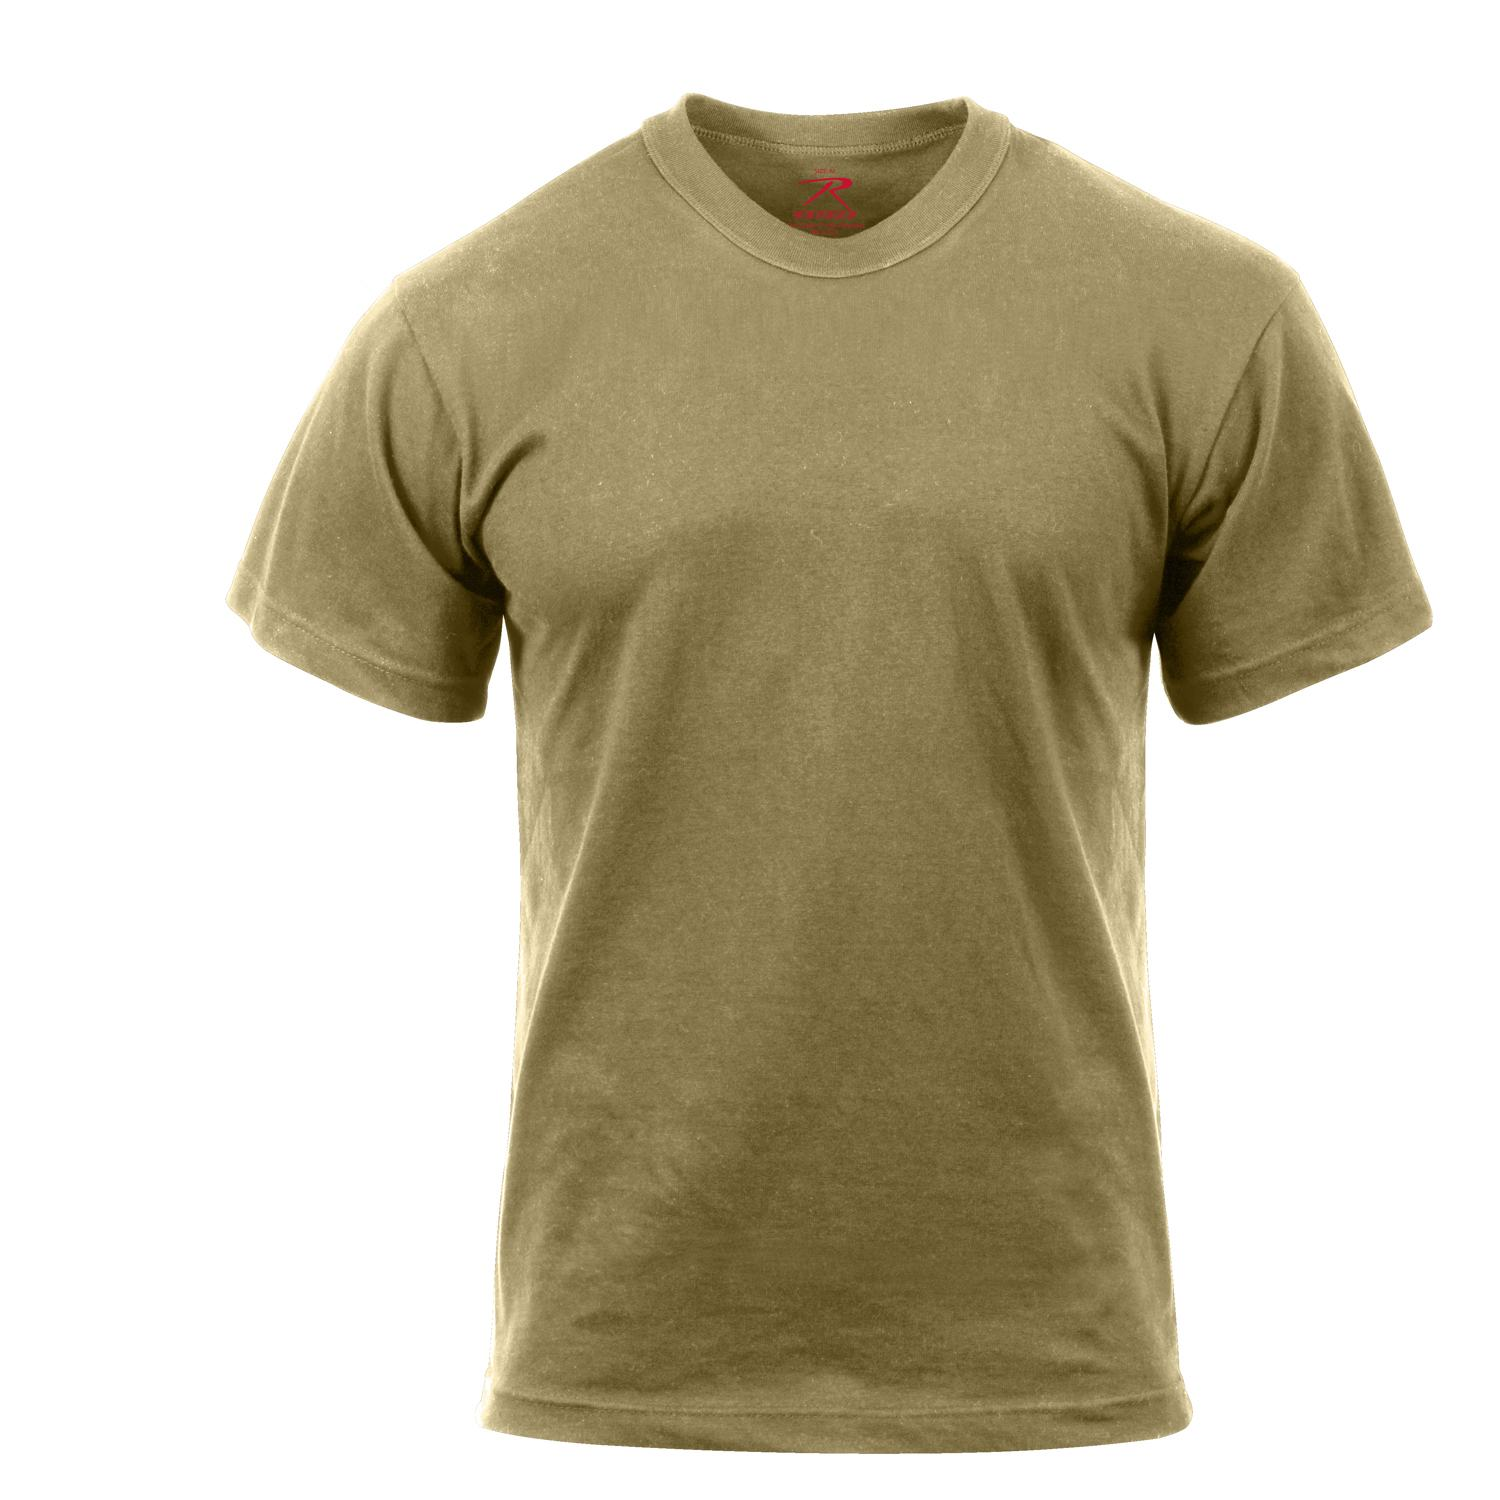 where to find the army coyote brown t shirts